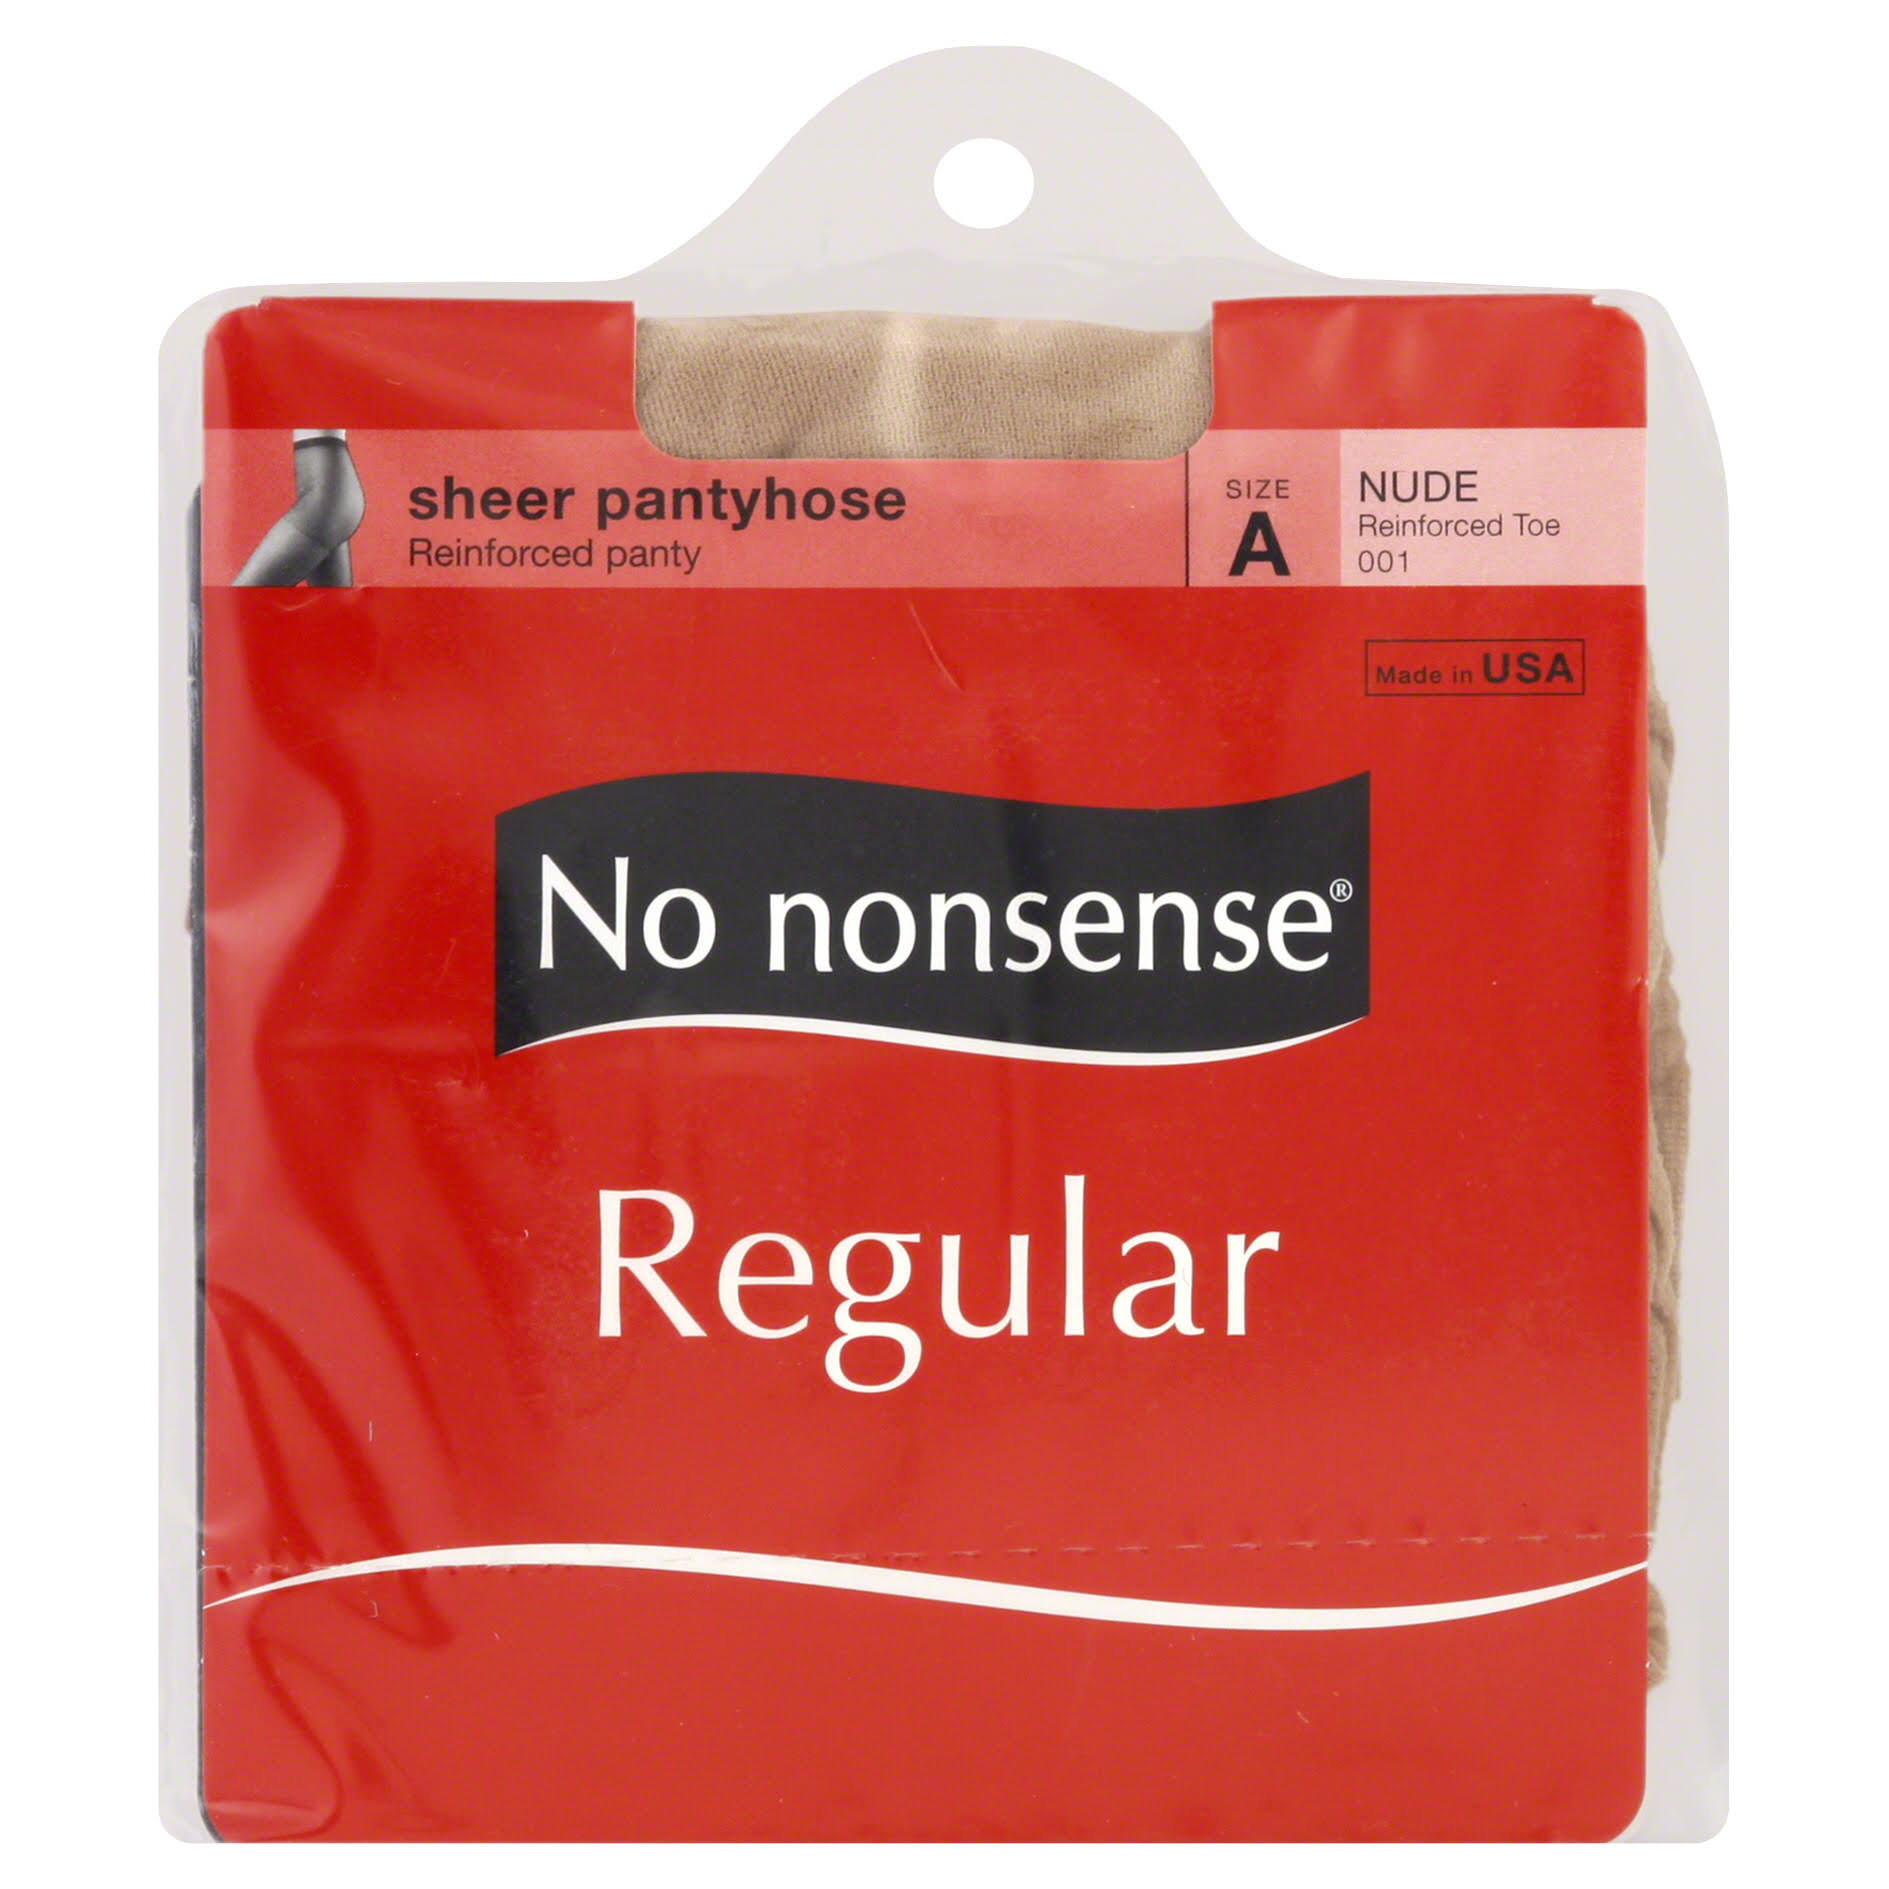 No Nonsense Regular Pantyhose - Size A, Nude